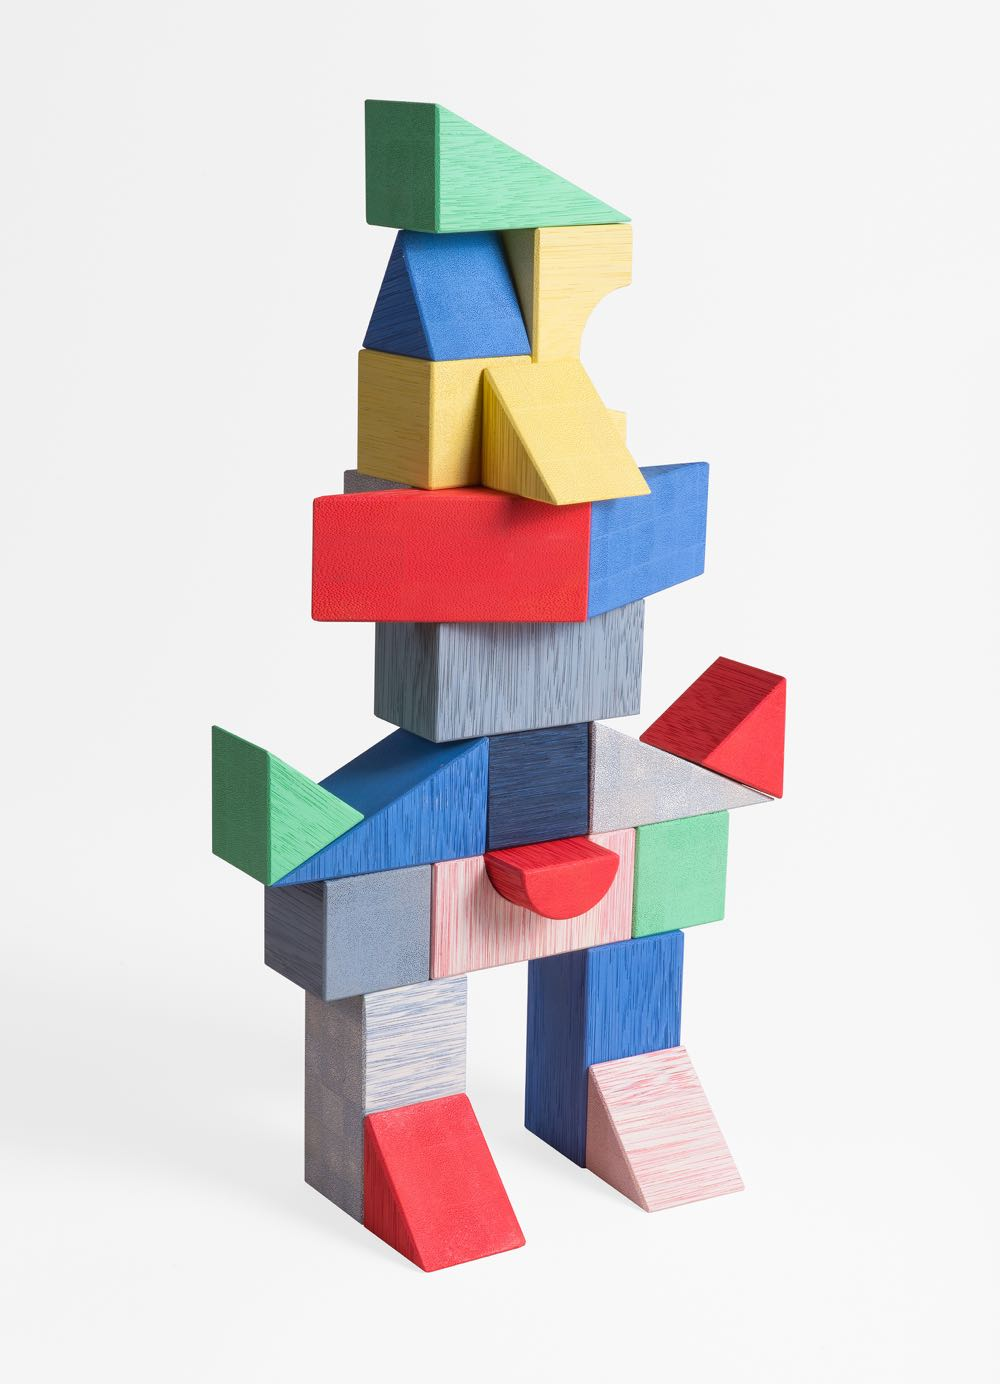 'kc play' by out for space - children's blocks made from karuun showing how the new process allows the material to be coloured all the way through.